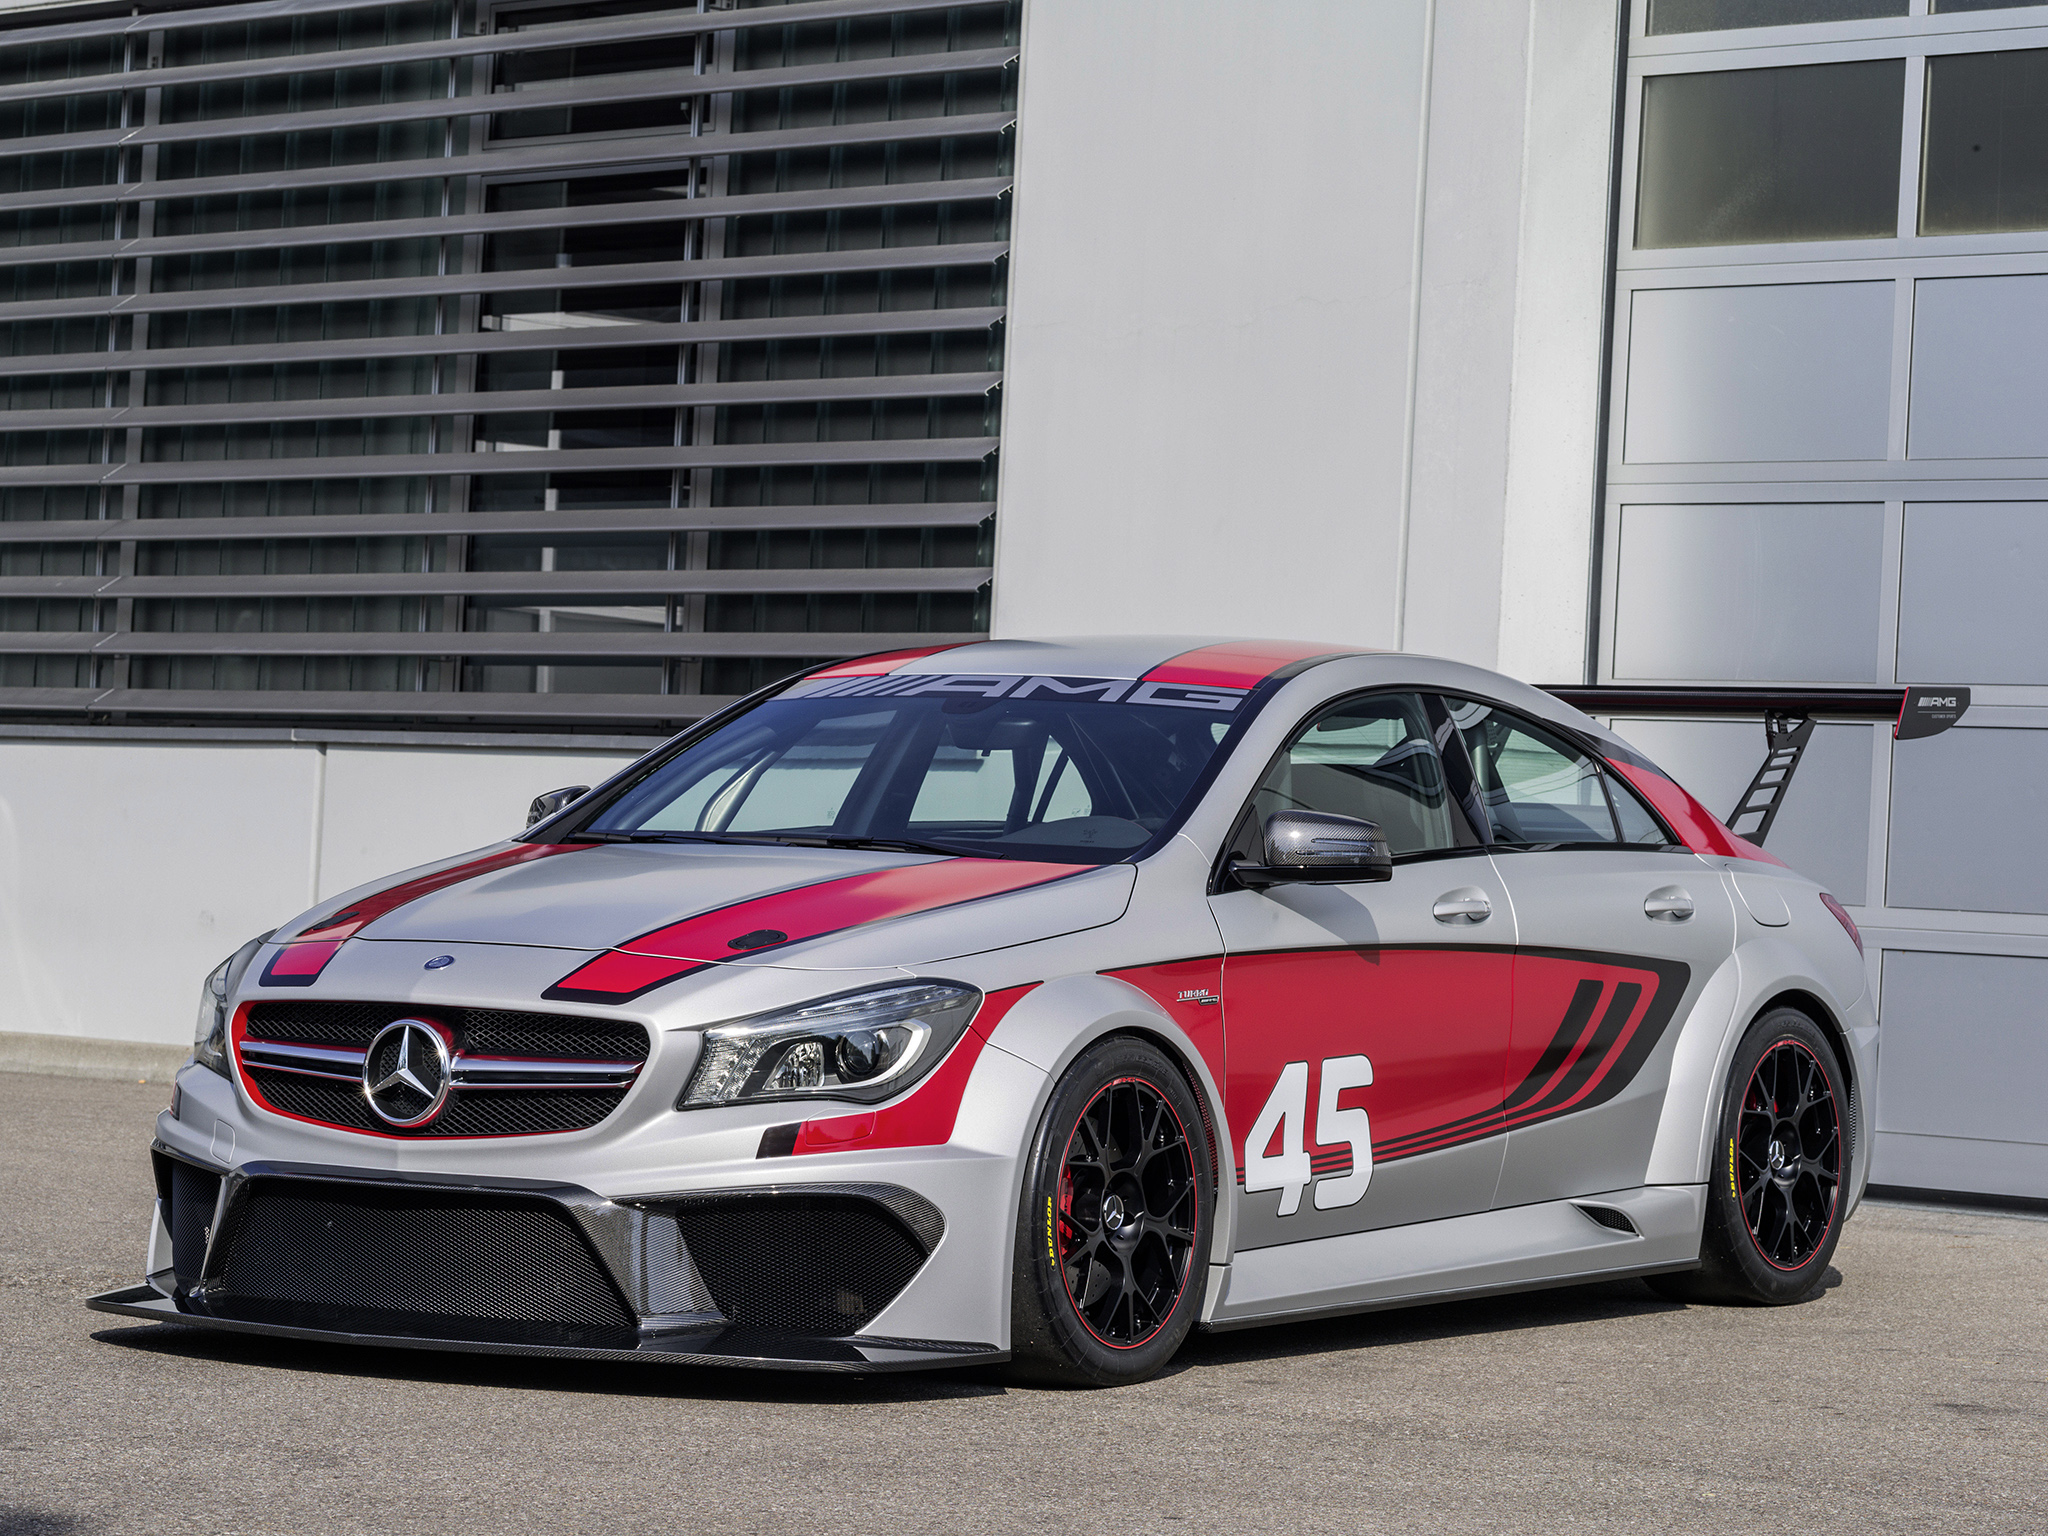 2013 mercedes benz cla 45 amg c117 concept race racing cla. Black Bedroom Furniture Sets. Home Design Ideas